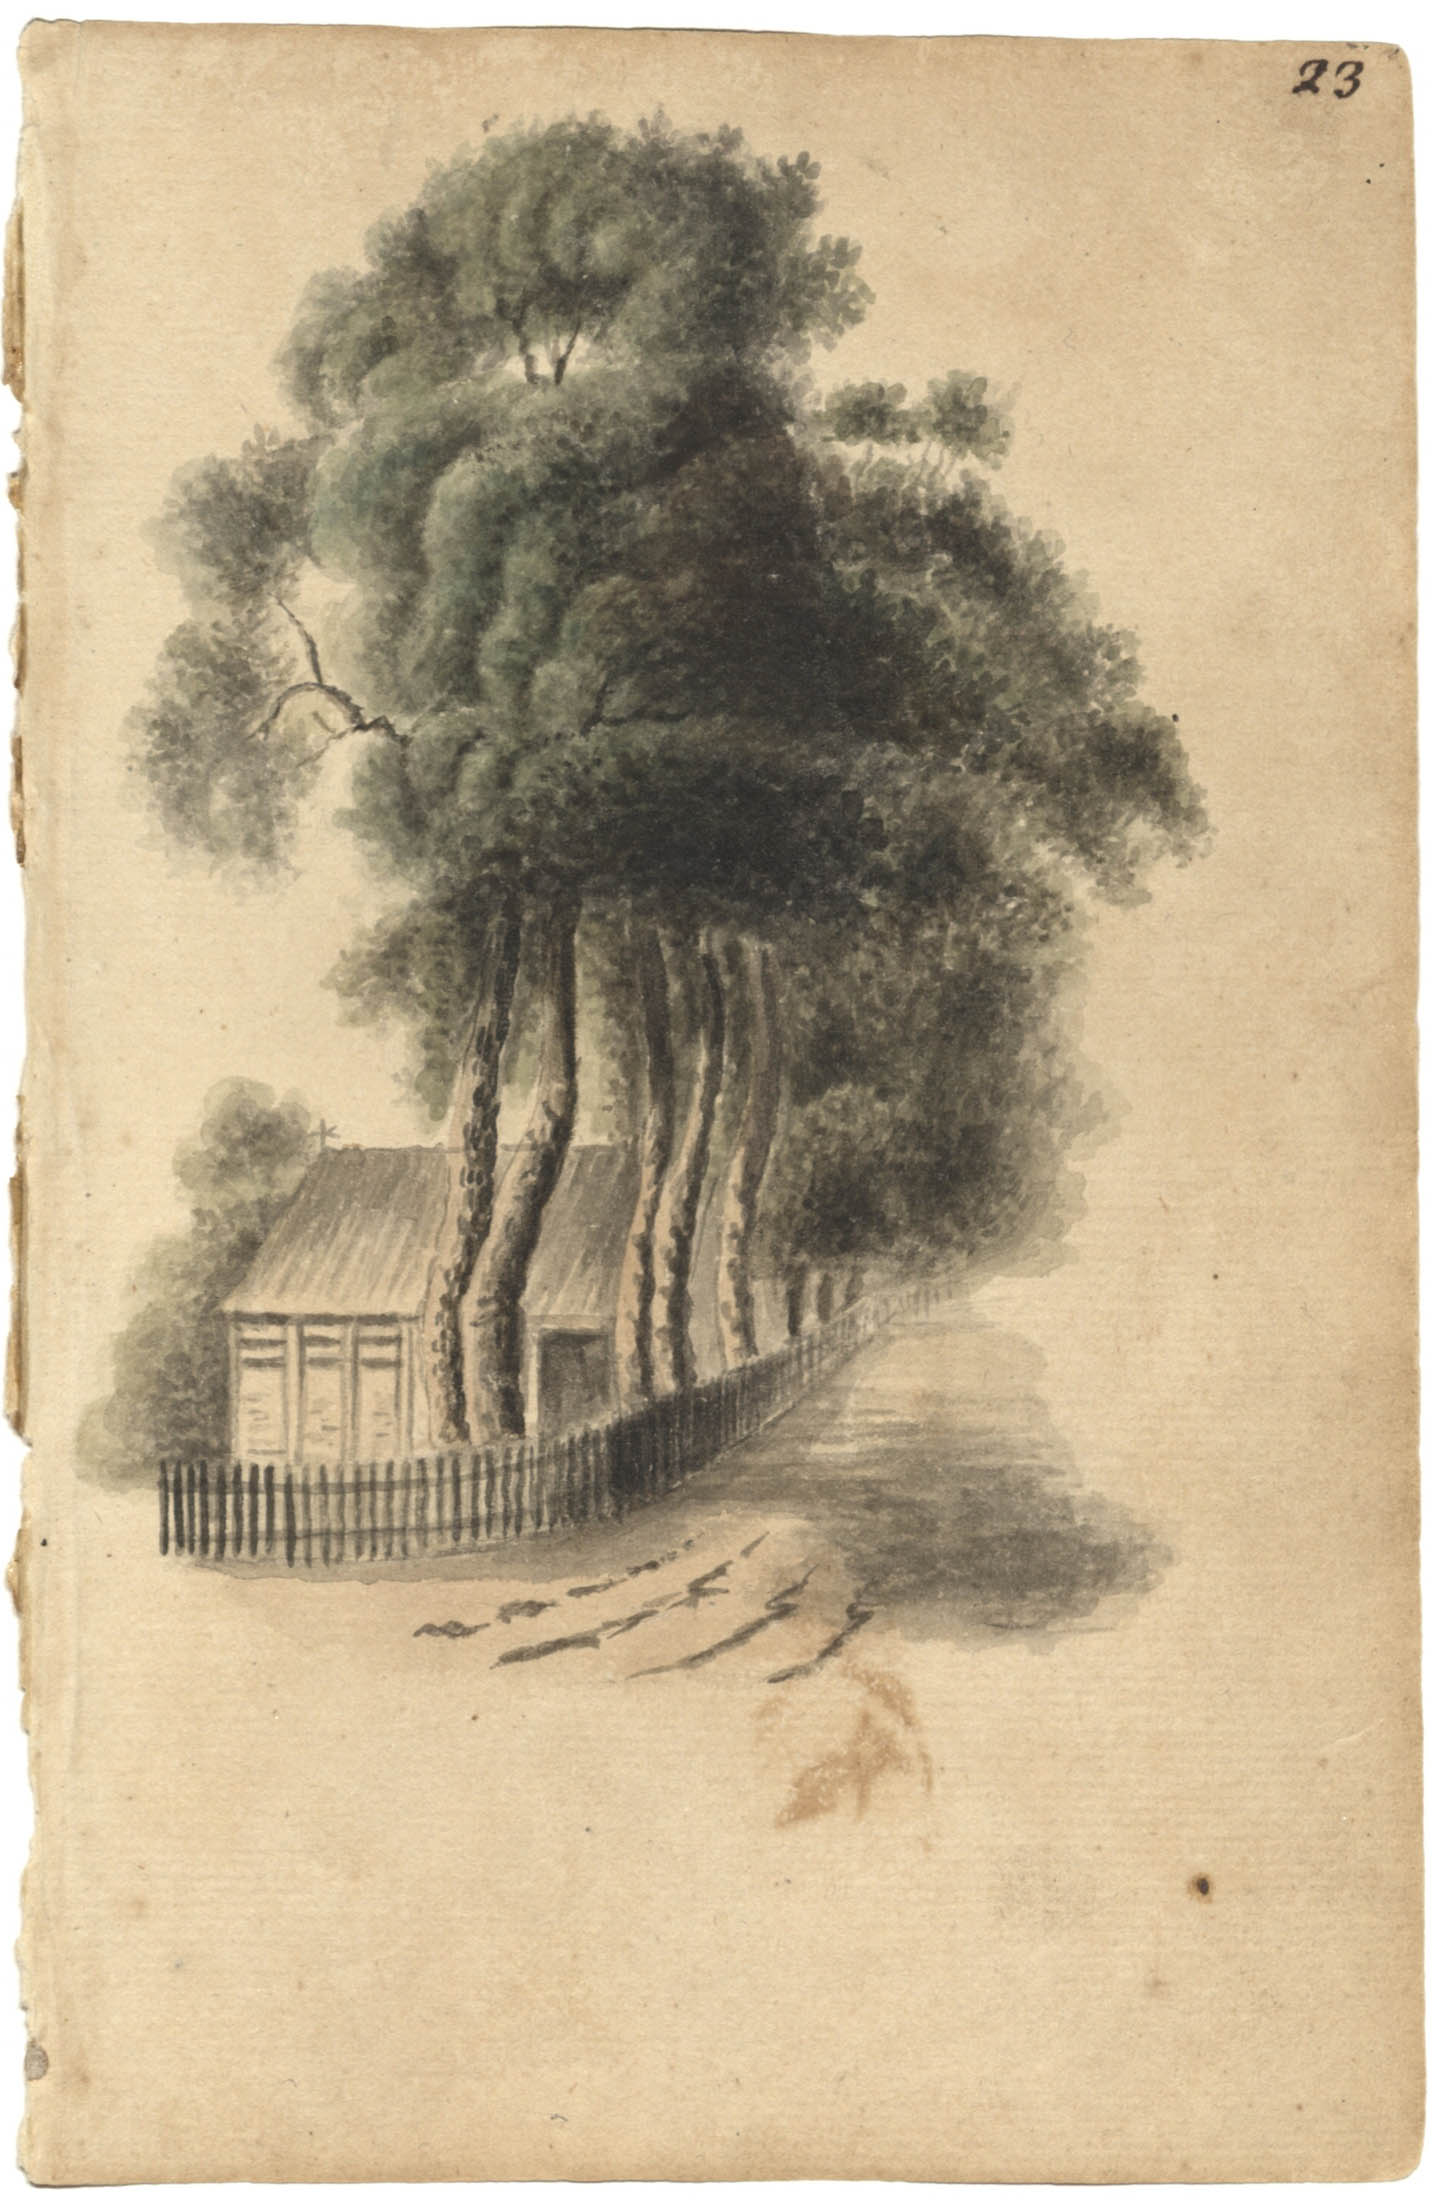 Sketch of cottage and tree-lined road